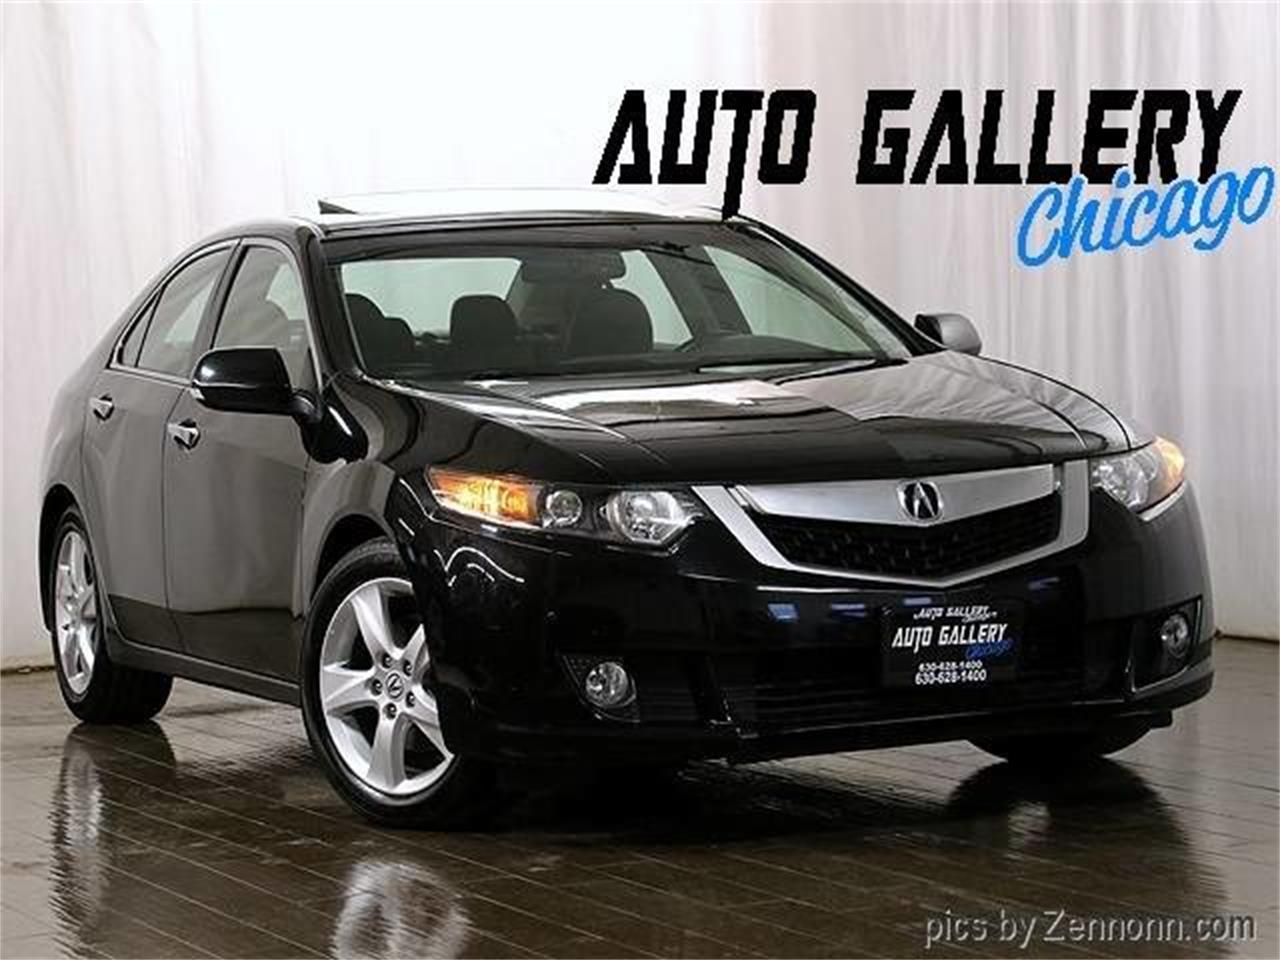 2010 Acura Tsx For Sale >> 2010 Acura Tsx For Sale Classiccars Com Cc 937272